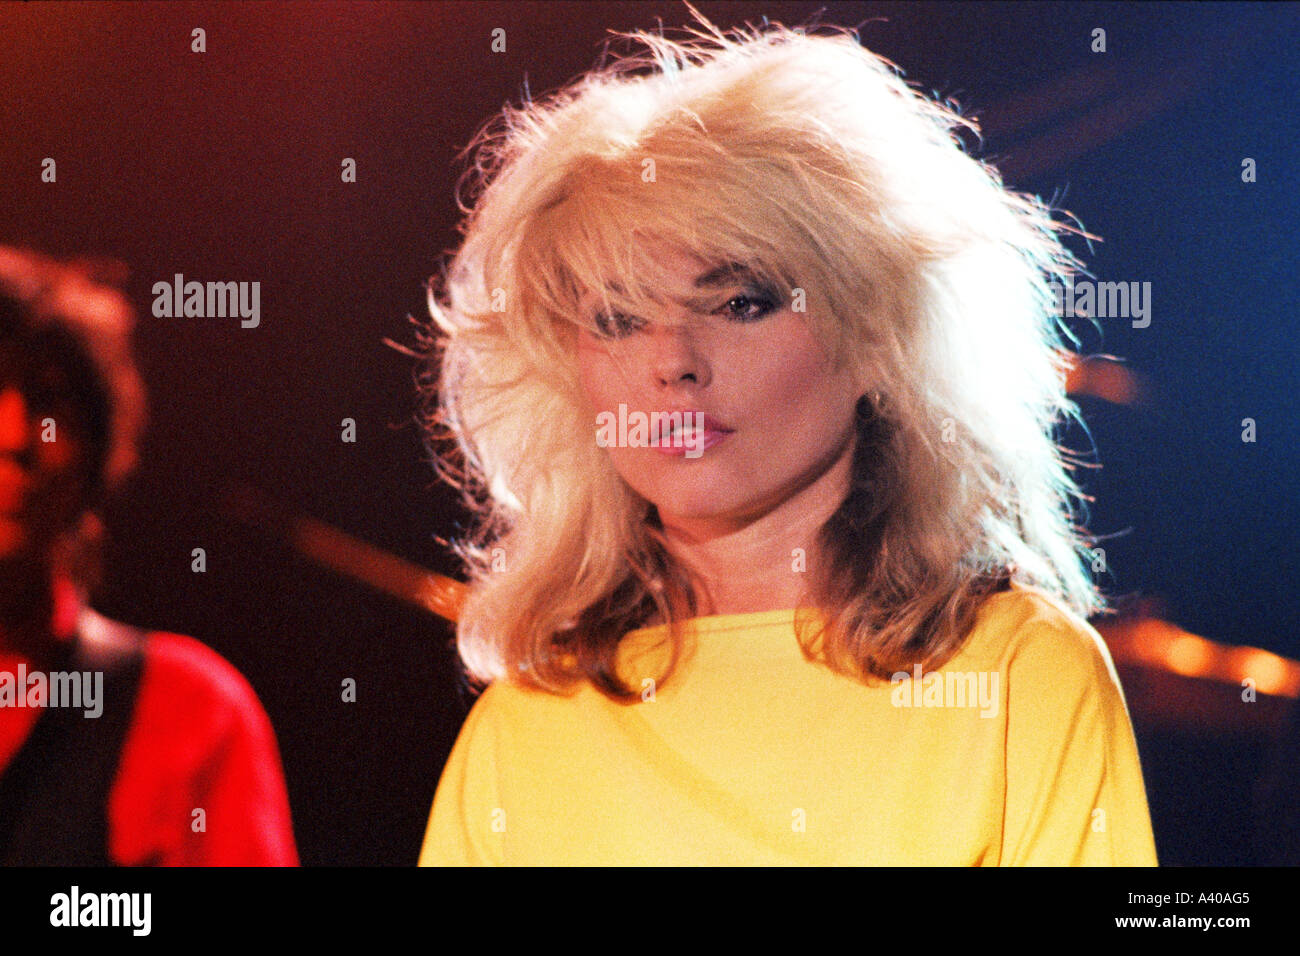 Debbie Harry of pop group Blondie performing Picture This PER0123 - Stock Image